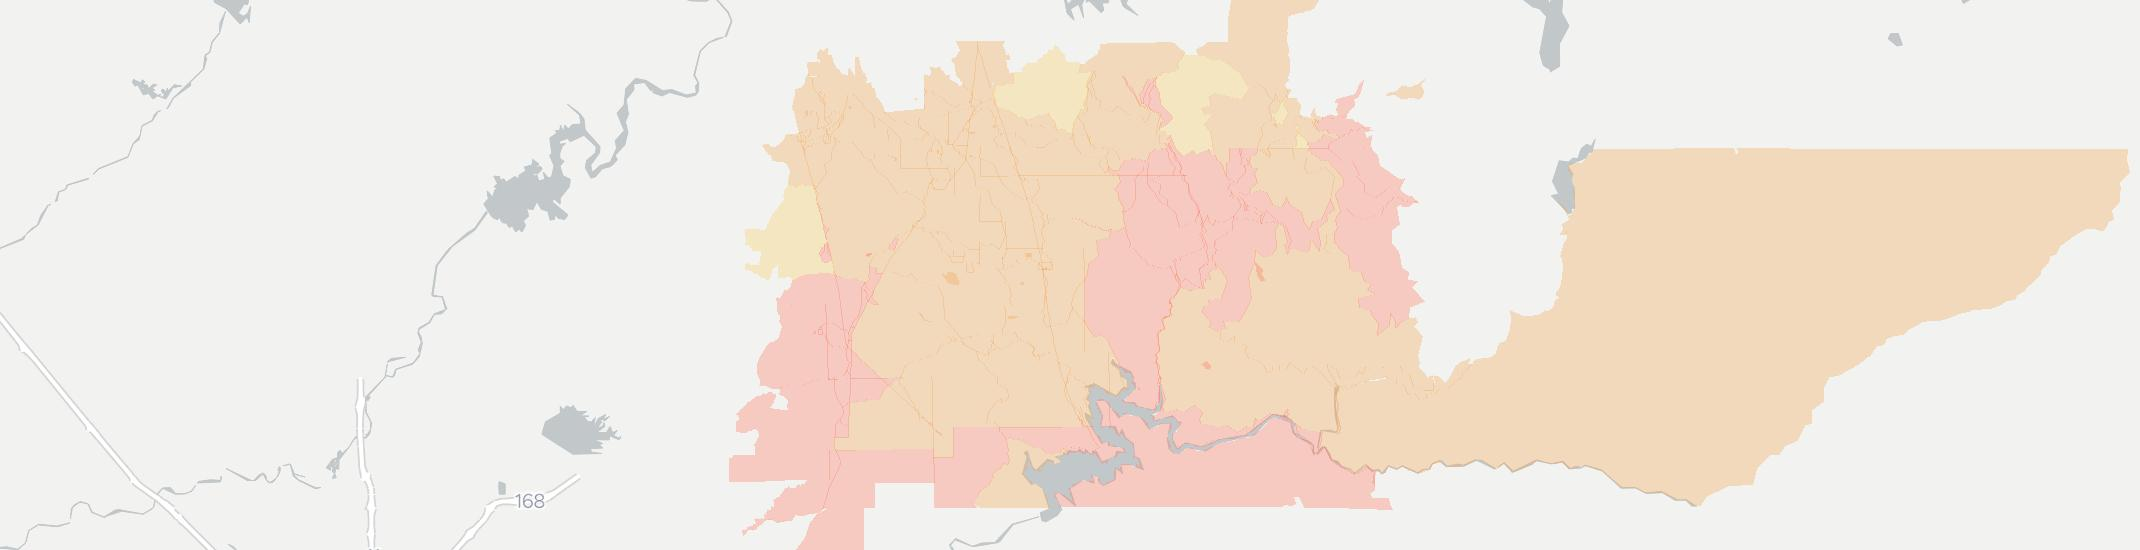 Tollhouse Internet Competition Map. Click for interactive map.